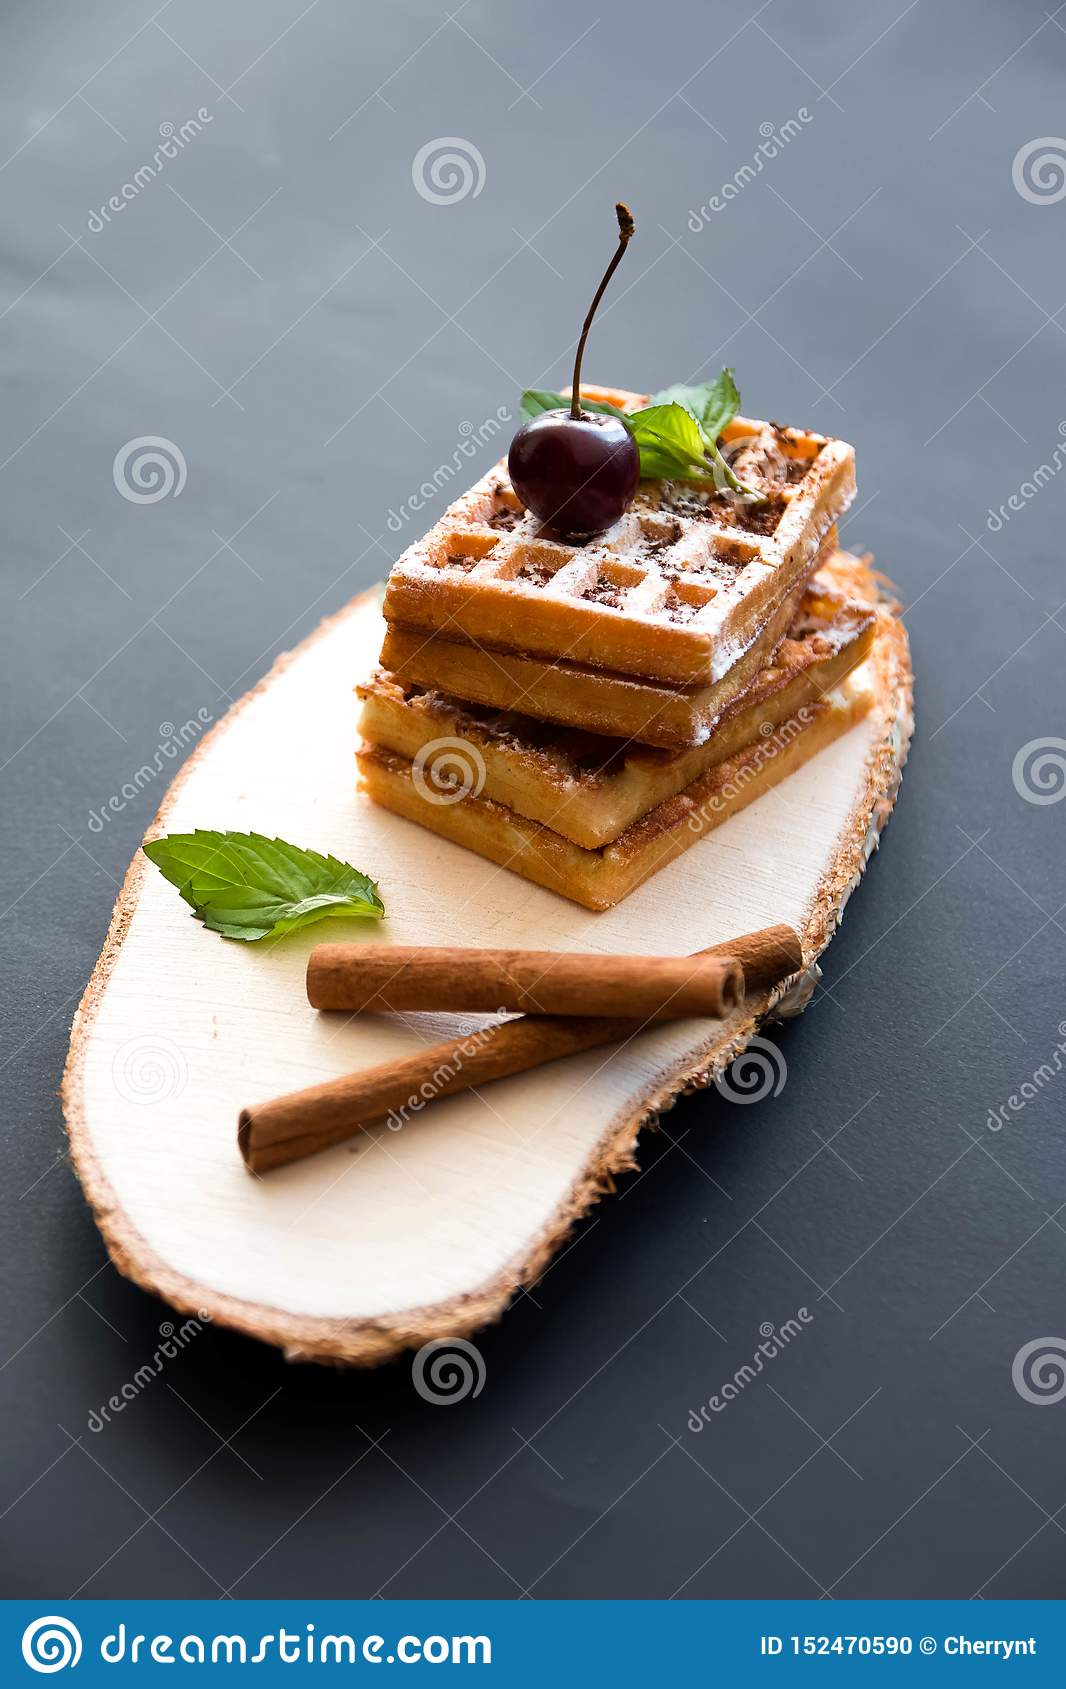 Soft waffles, on a black background, with cherries